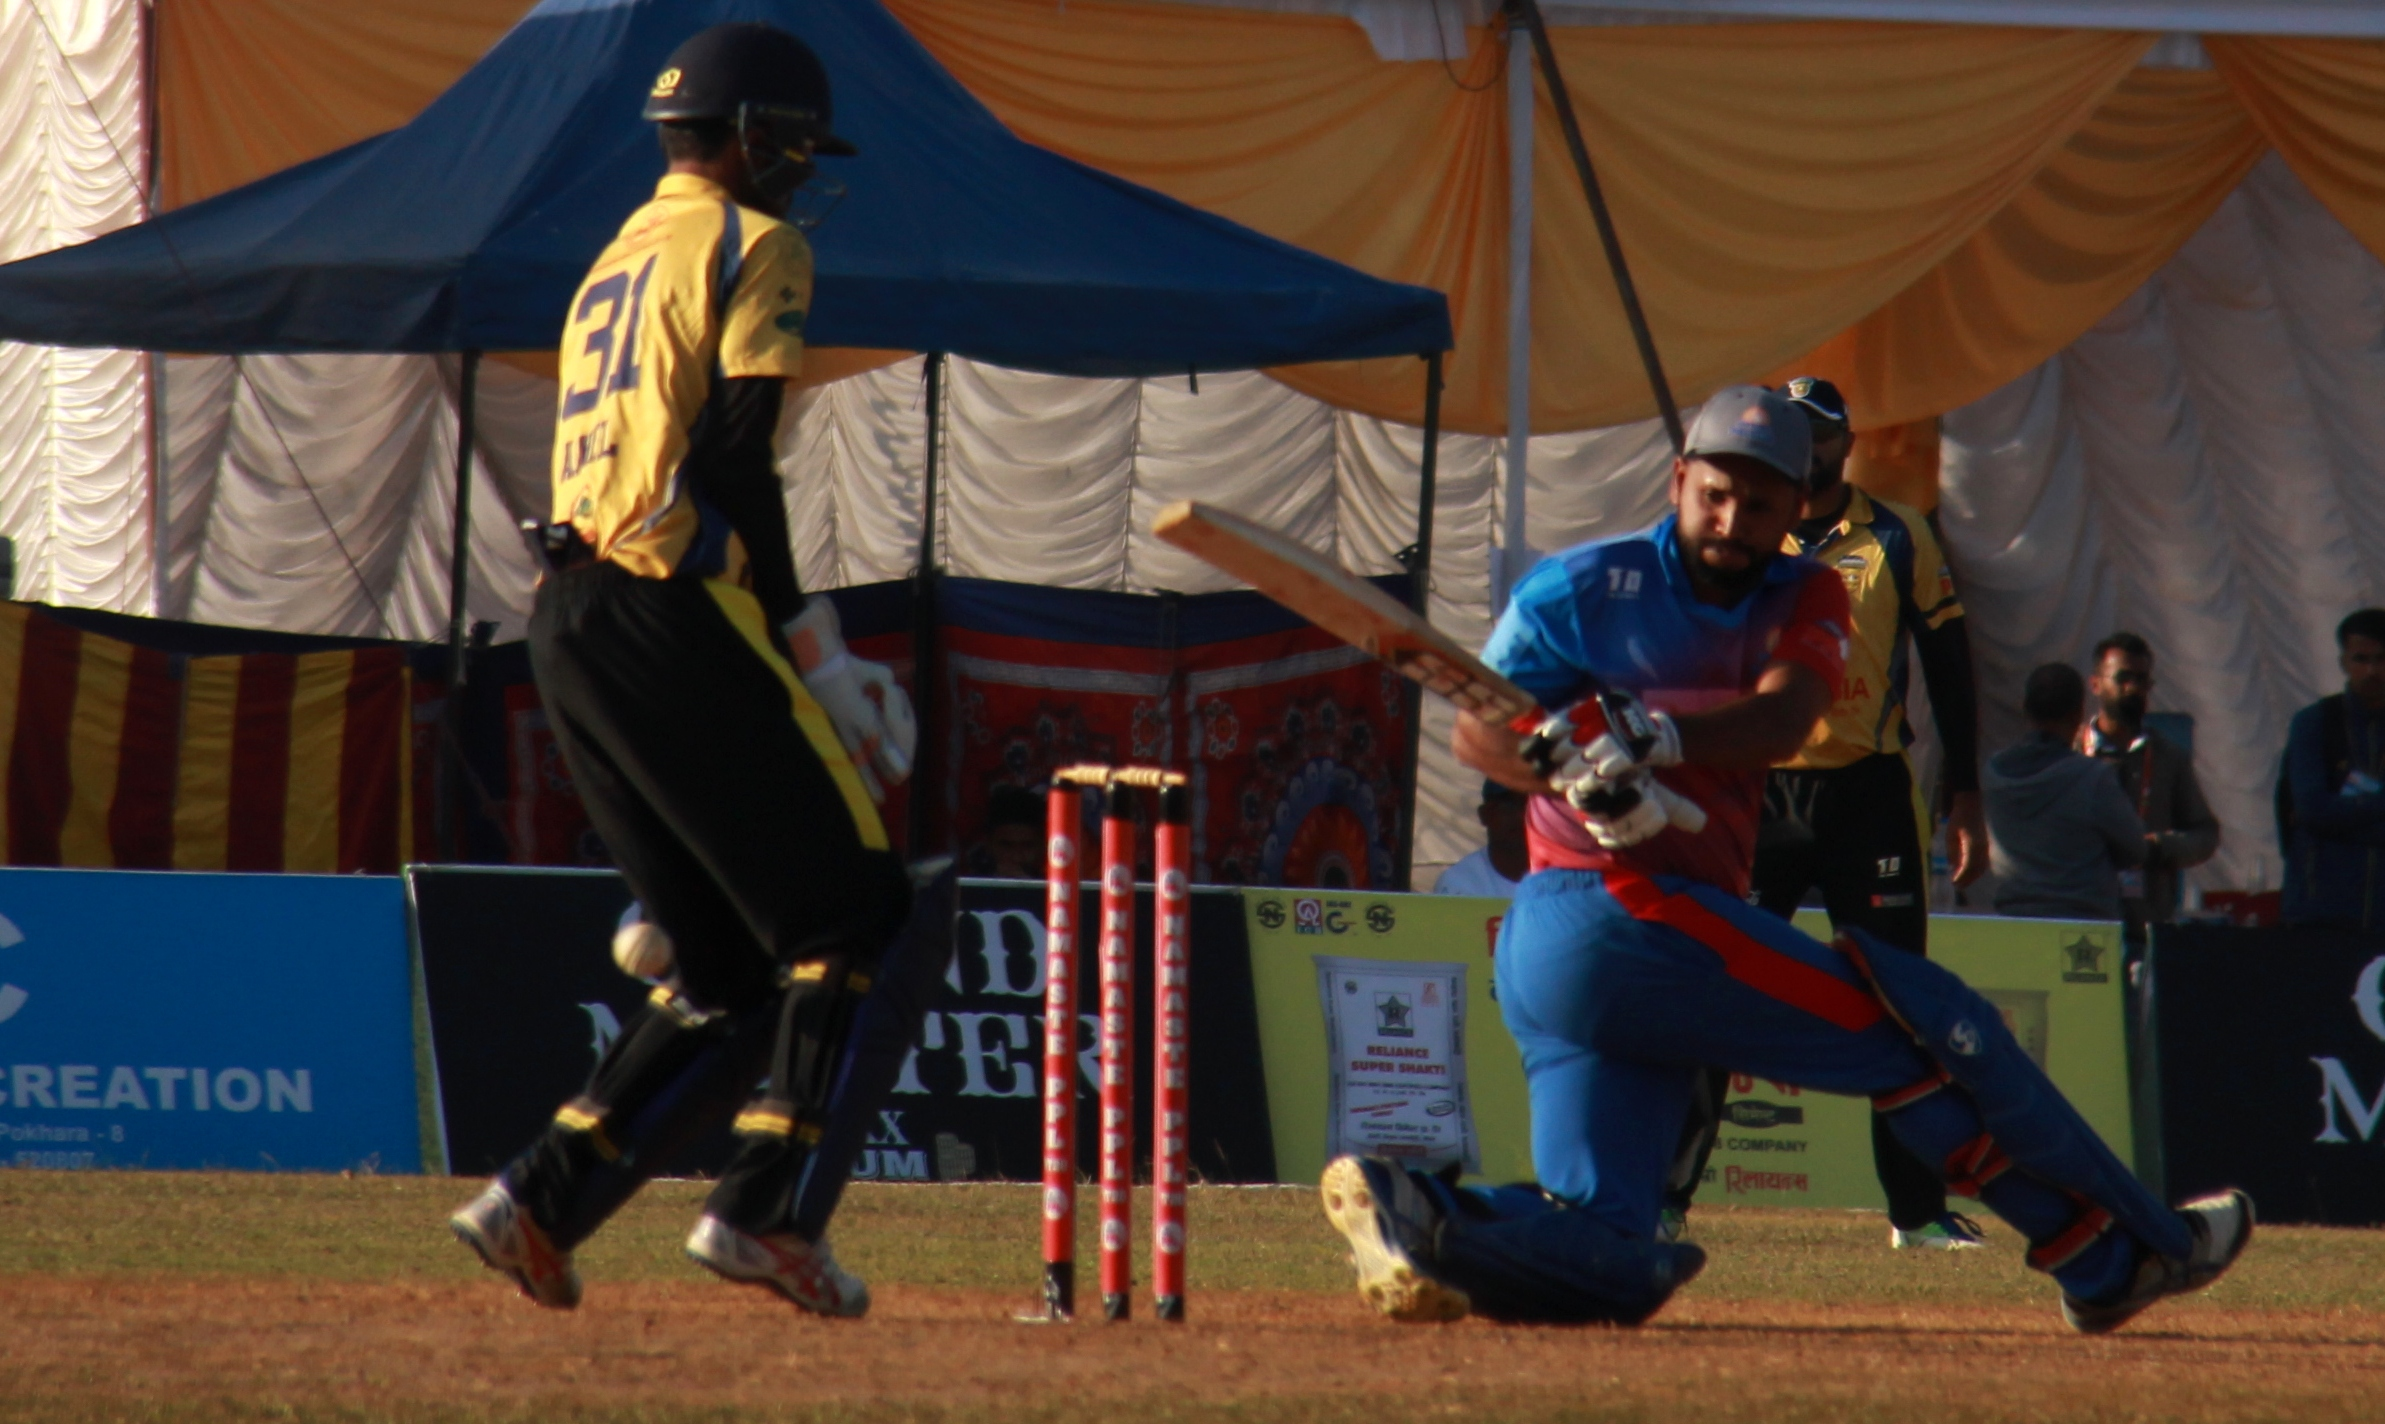 Ravi Inder Singh batting